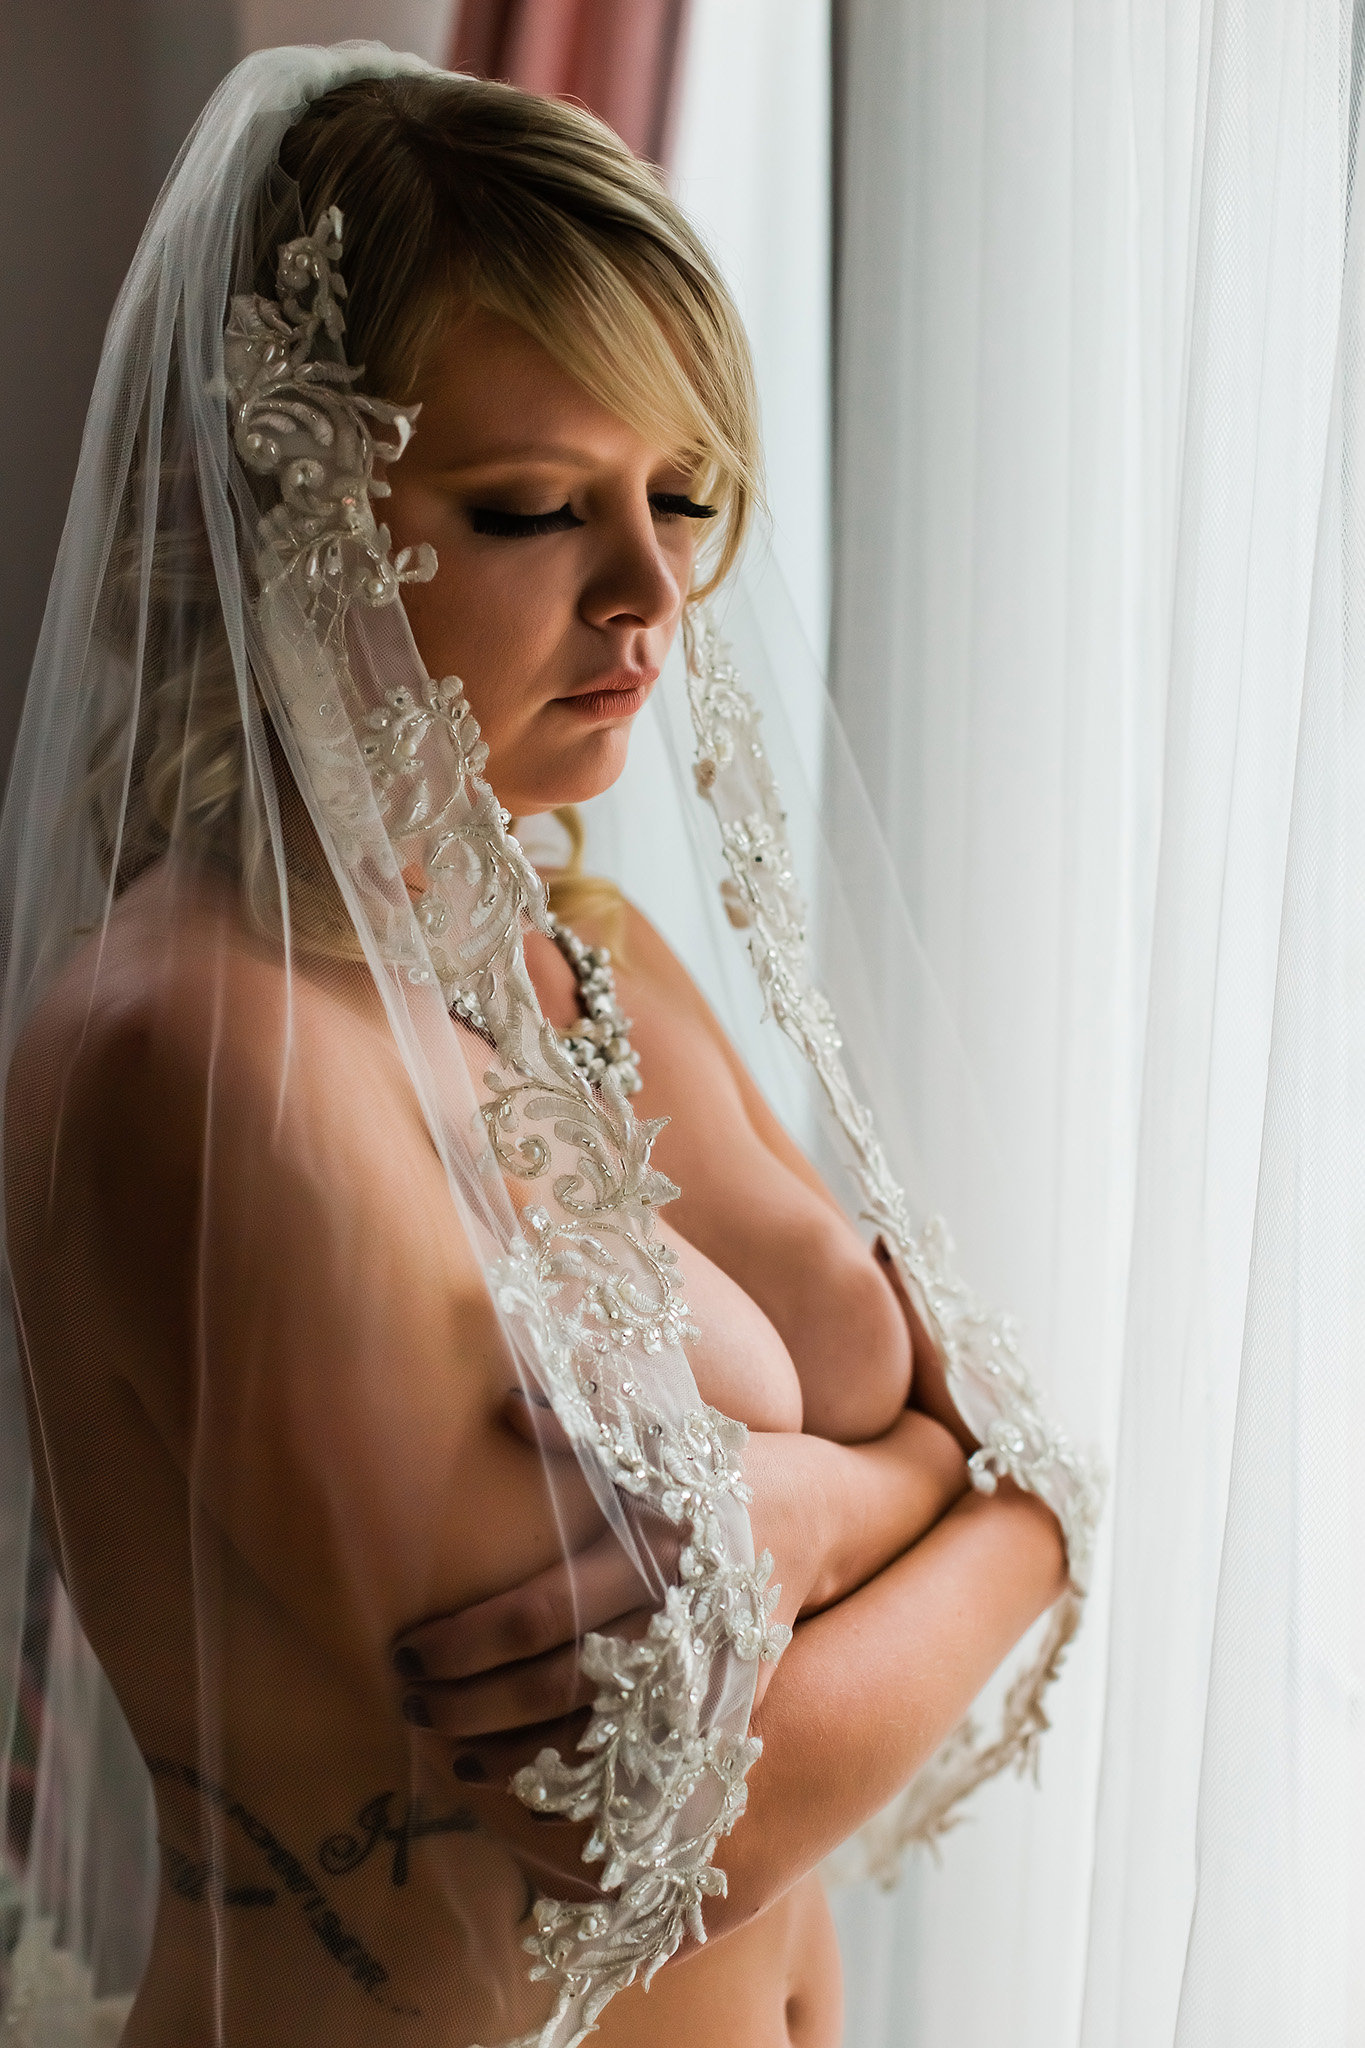 Beautiful bride taking boudoir photos